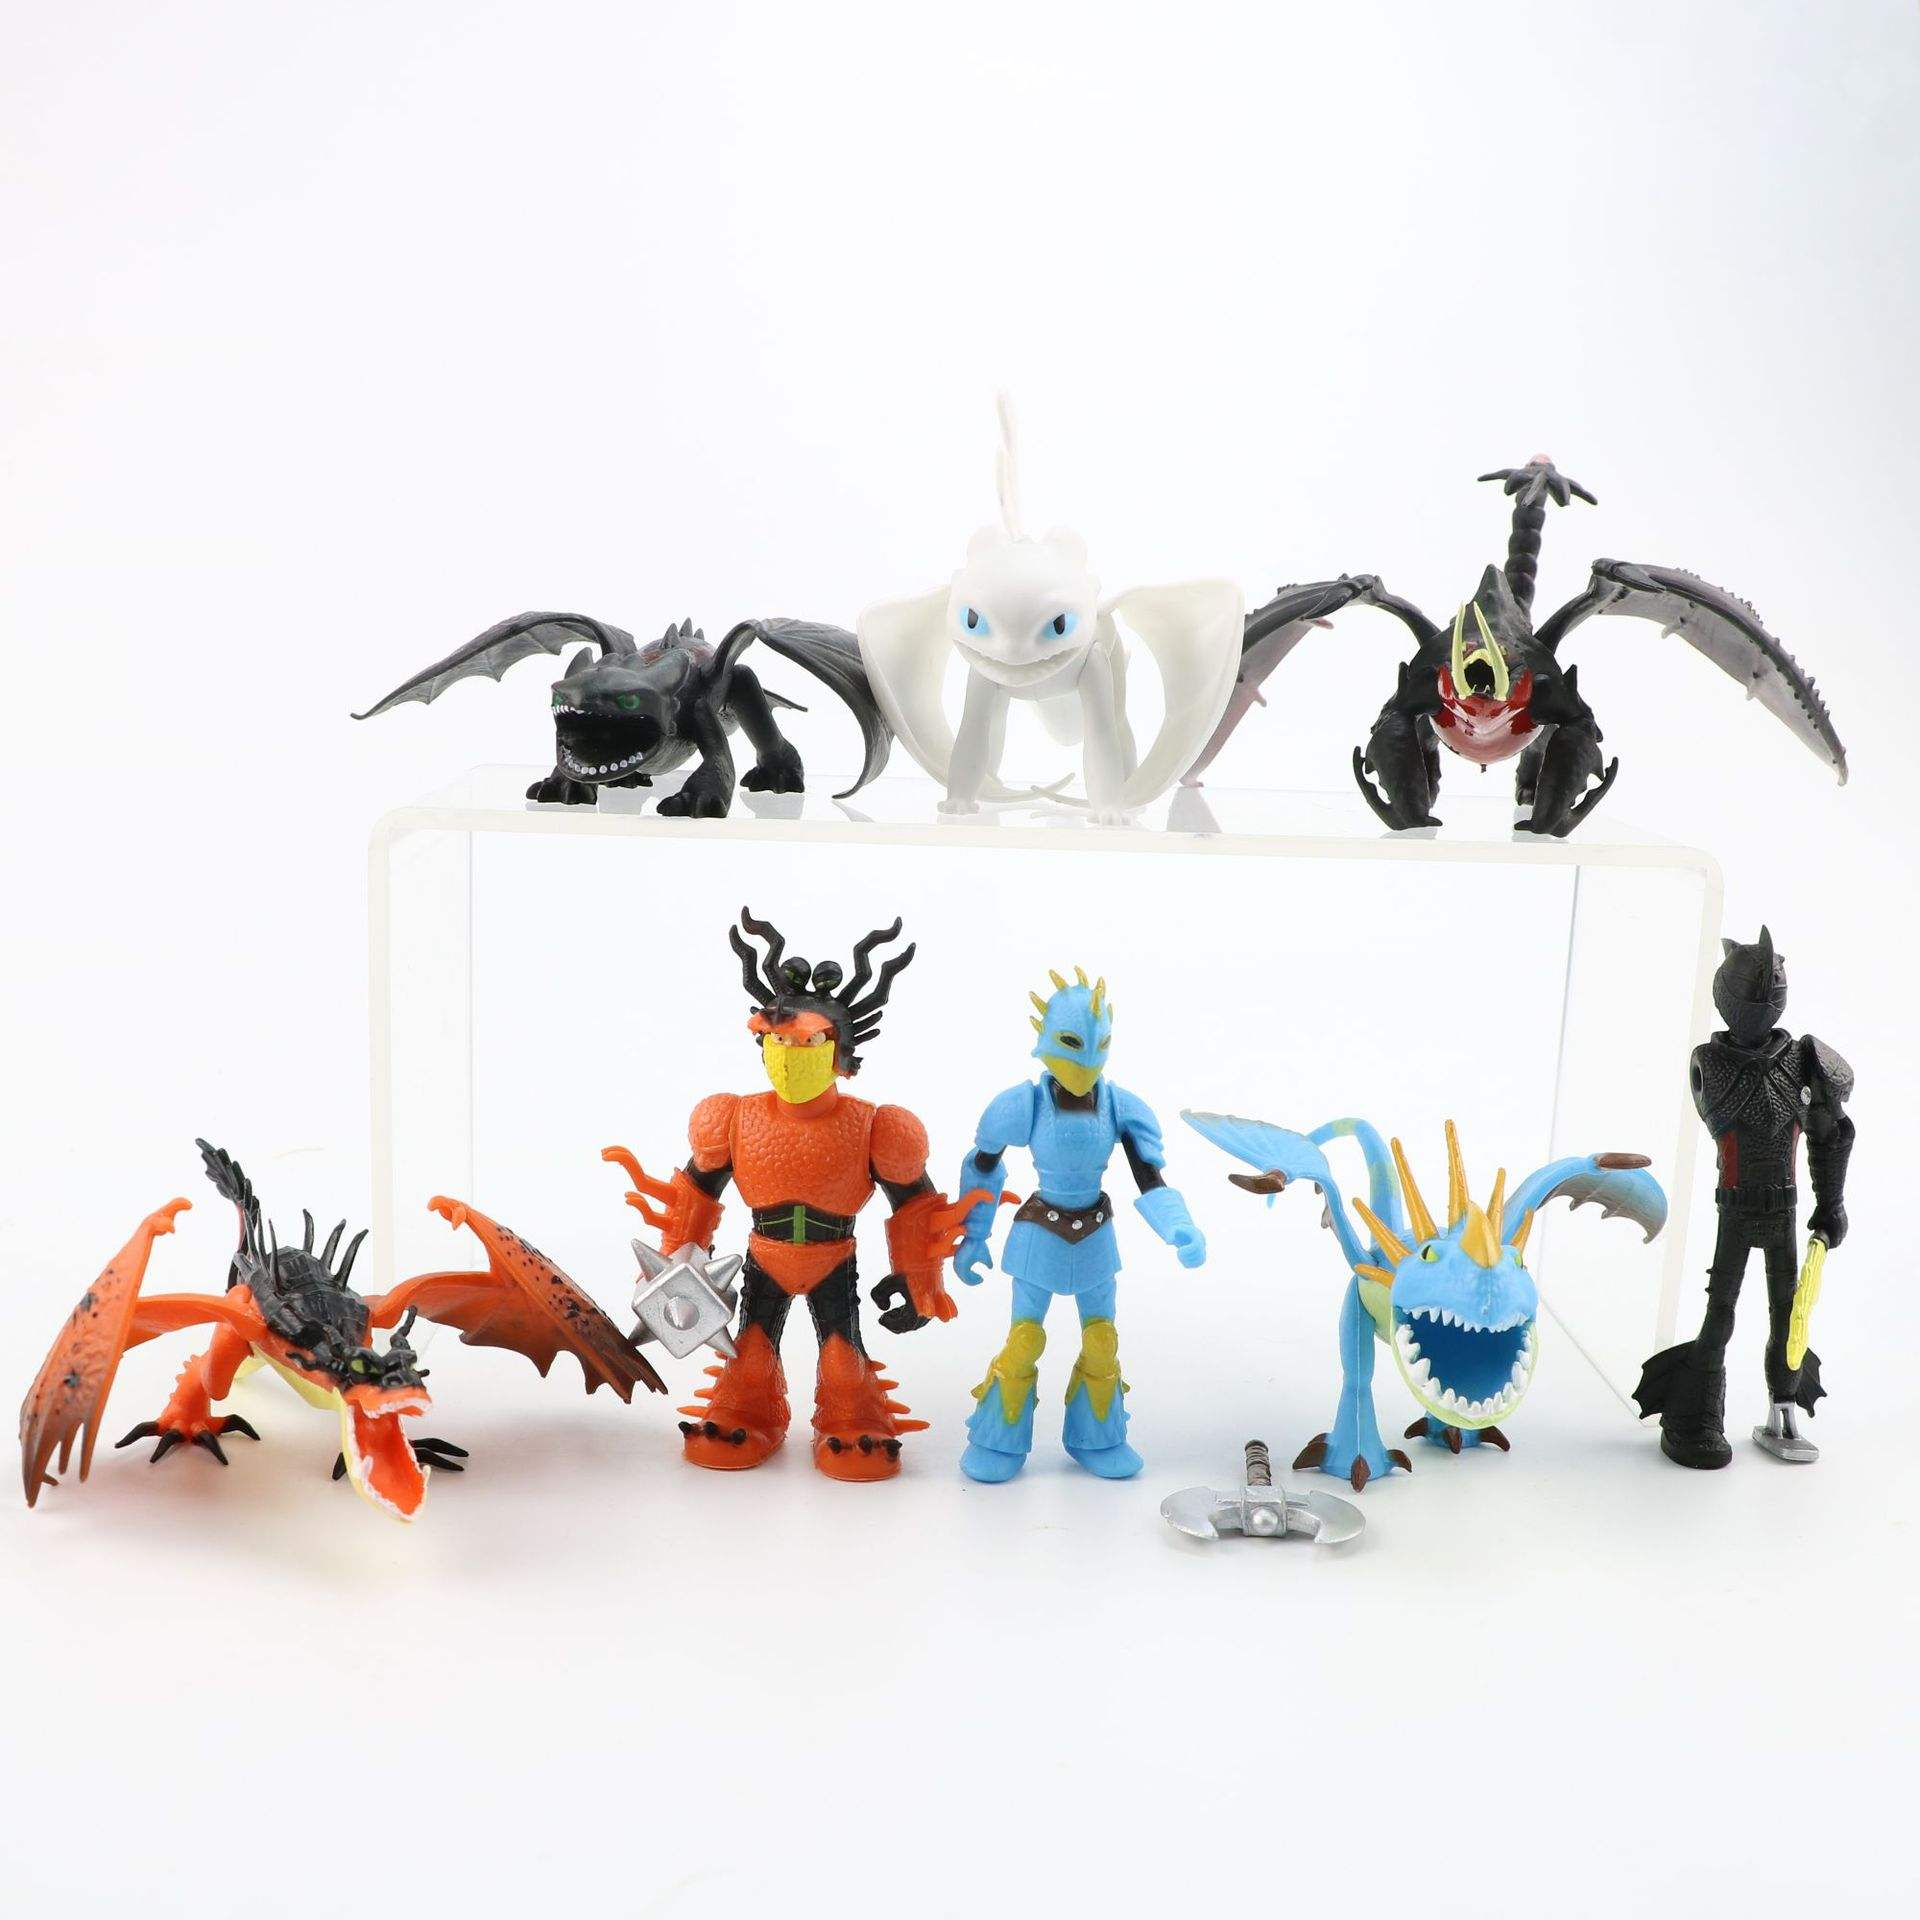 8 stks/set hoe to train your dragon 3 PVC action Figure, Tandeloze Night Fury Beeldje <span class=keywords><strong>speelgoed</strong></span>, anime Licht Fury pop voor kinderen